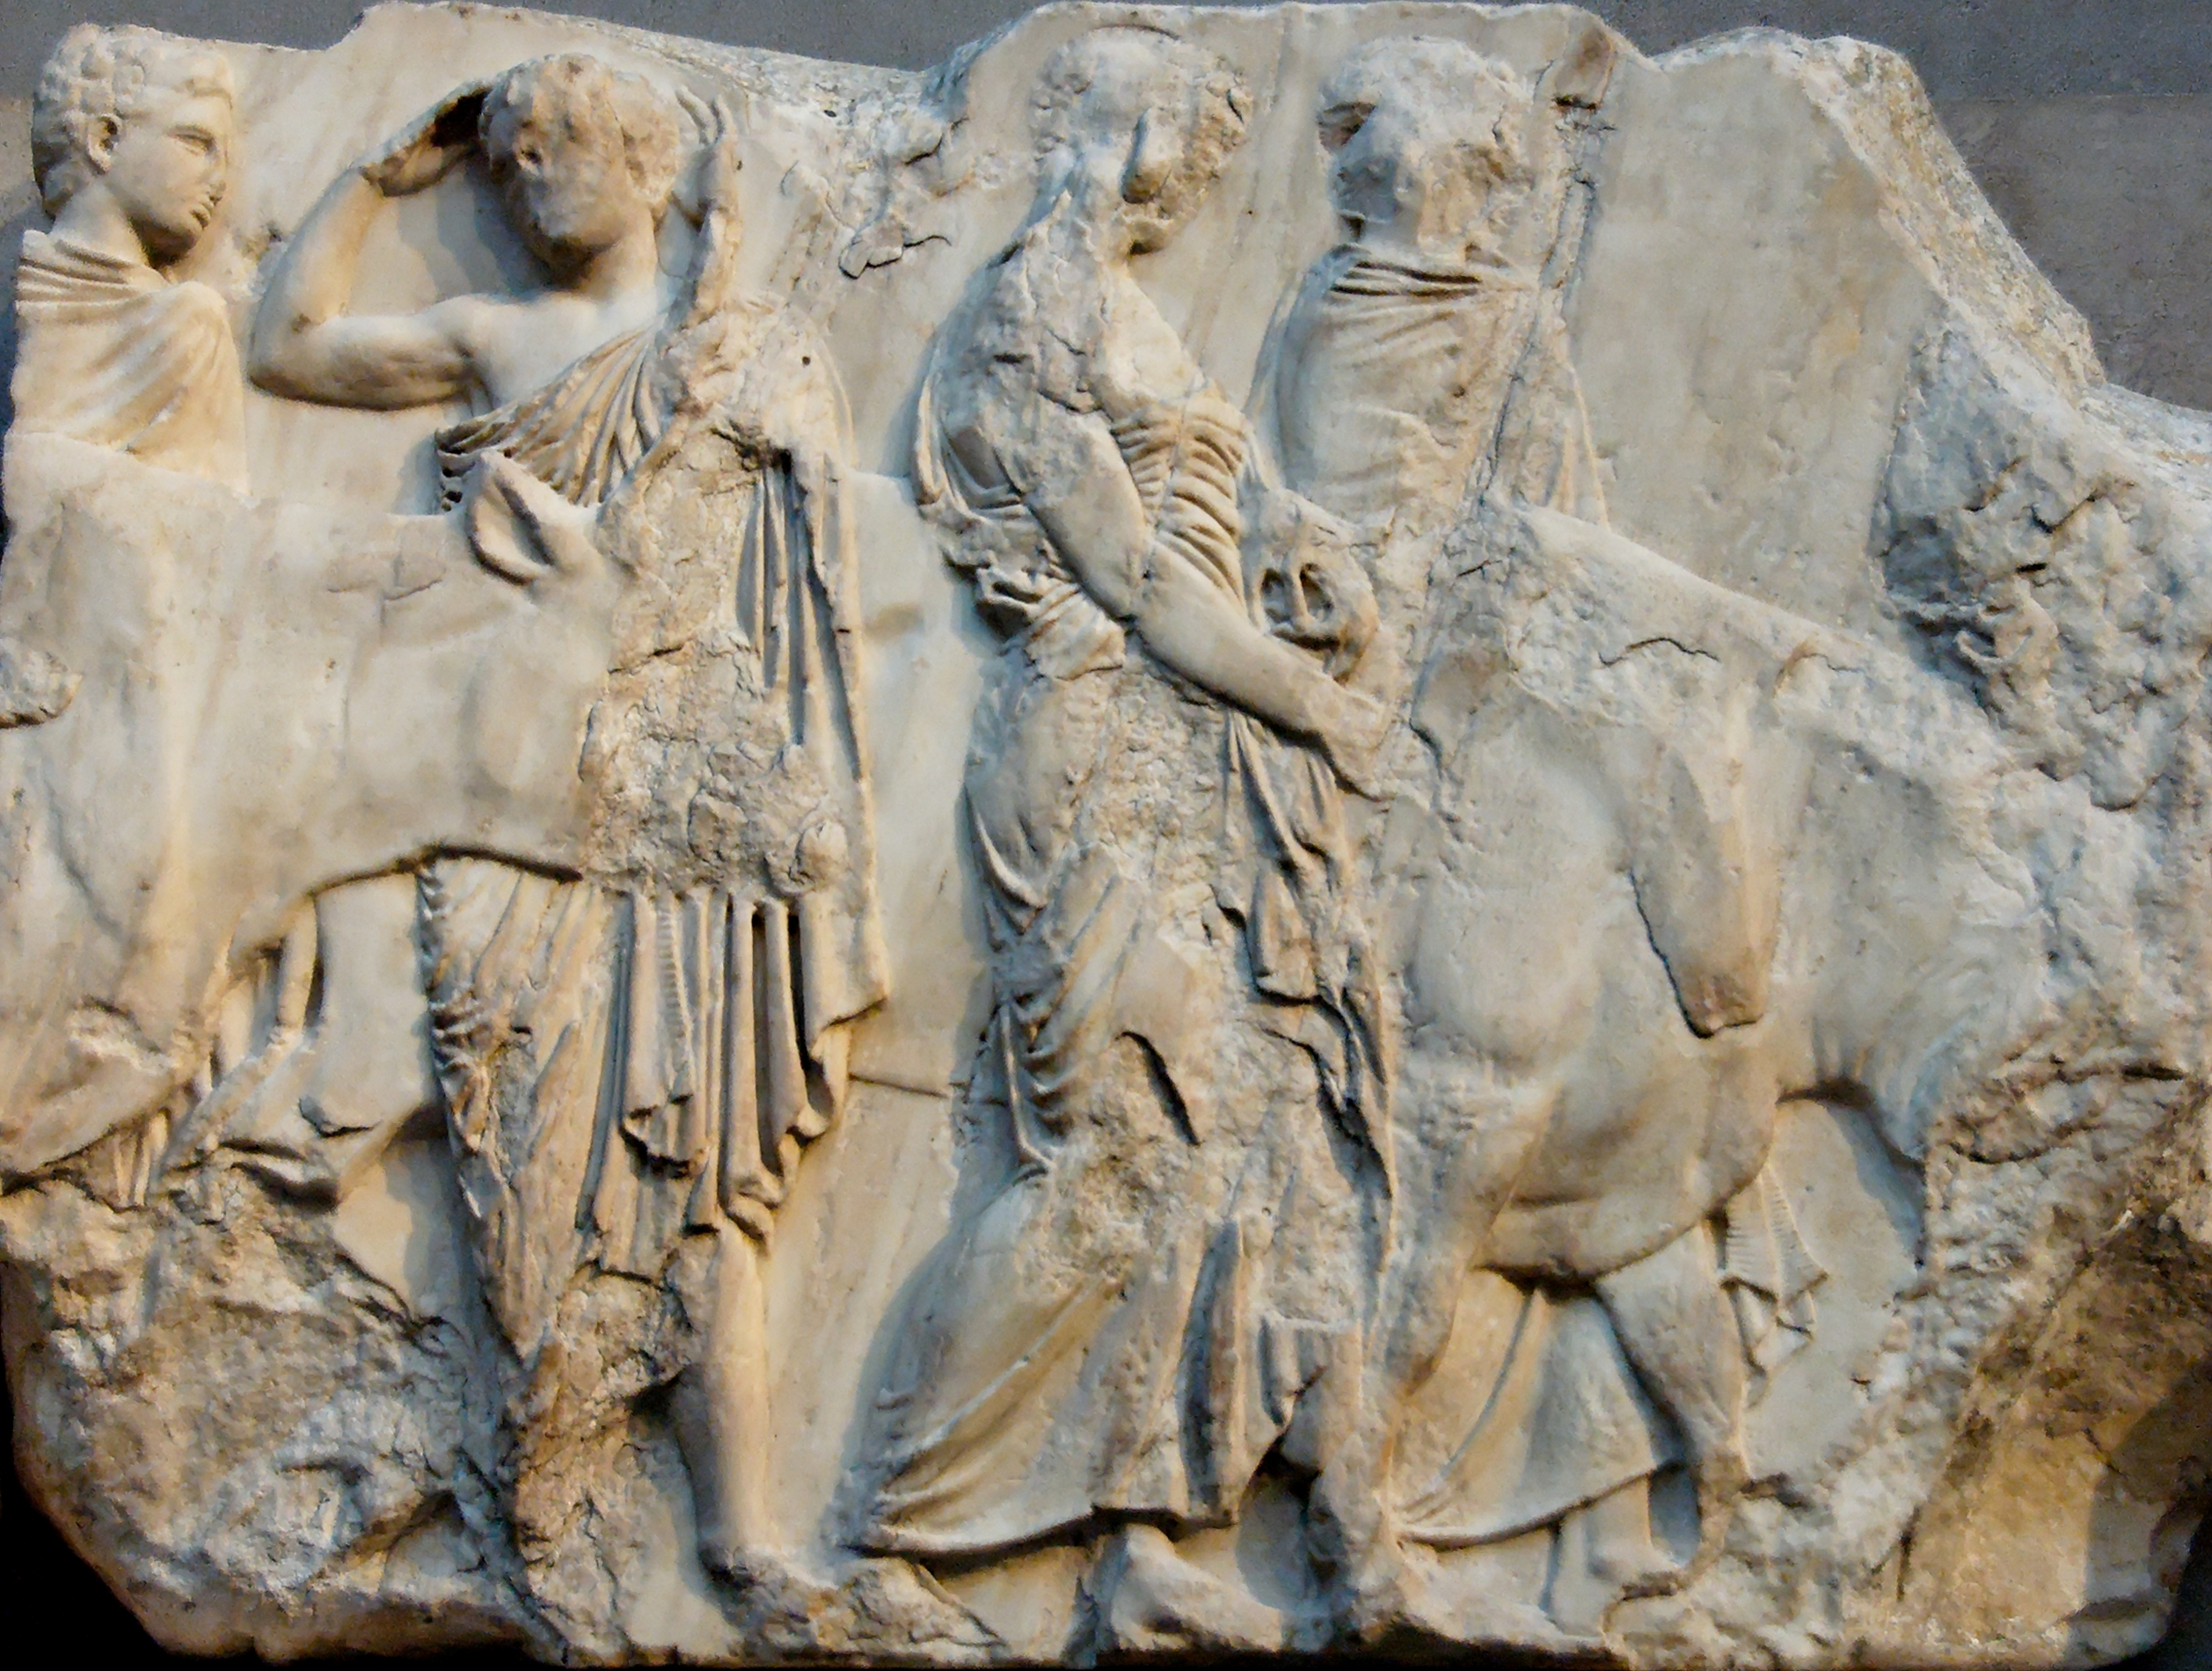 gender and sexuality in the parthenon frieze essay For the past 230 years or so, the story that was sculpted into the frieze of the parthenon  the secret history of the parthenon by larry getlen view author archive.